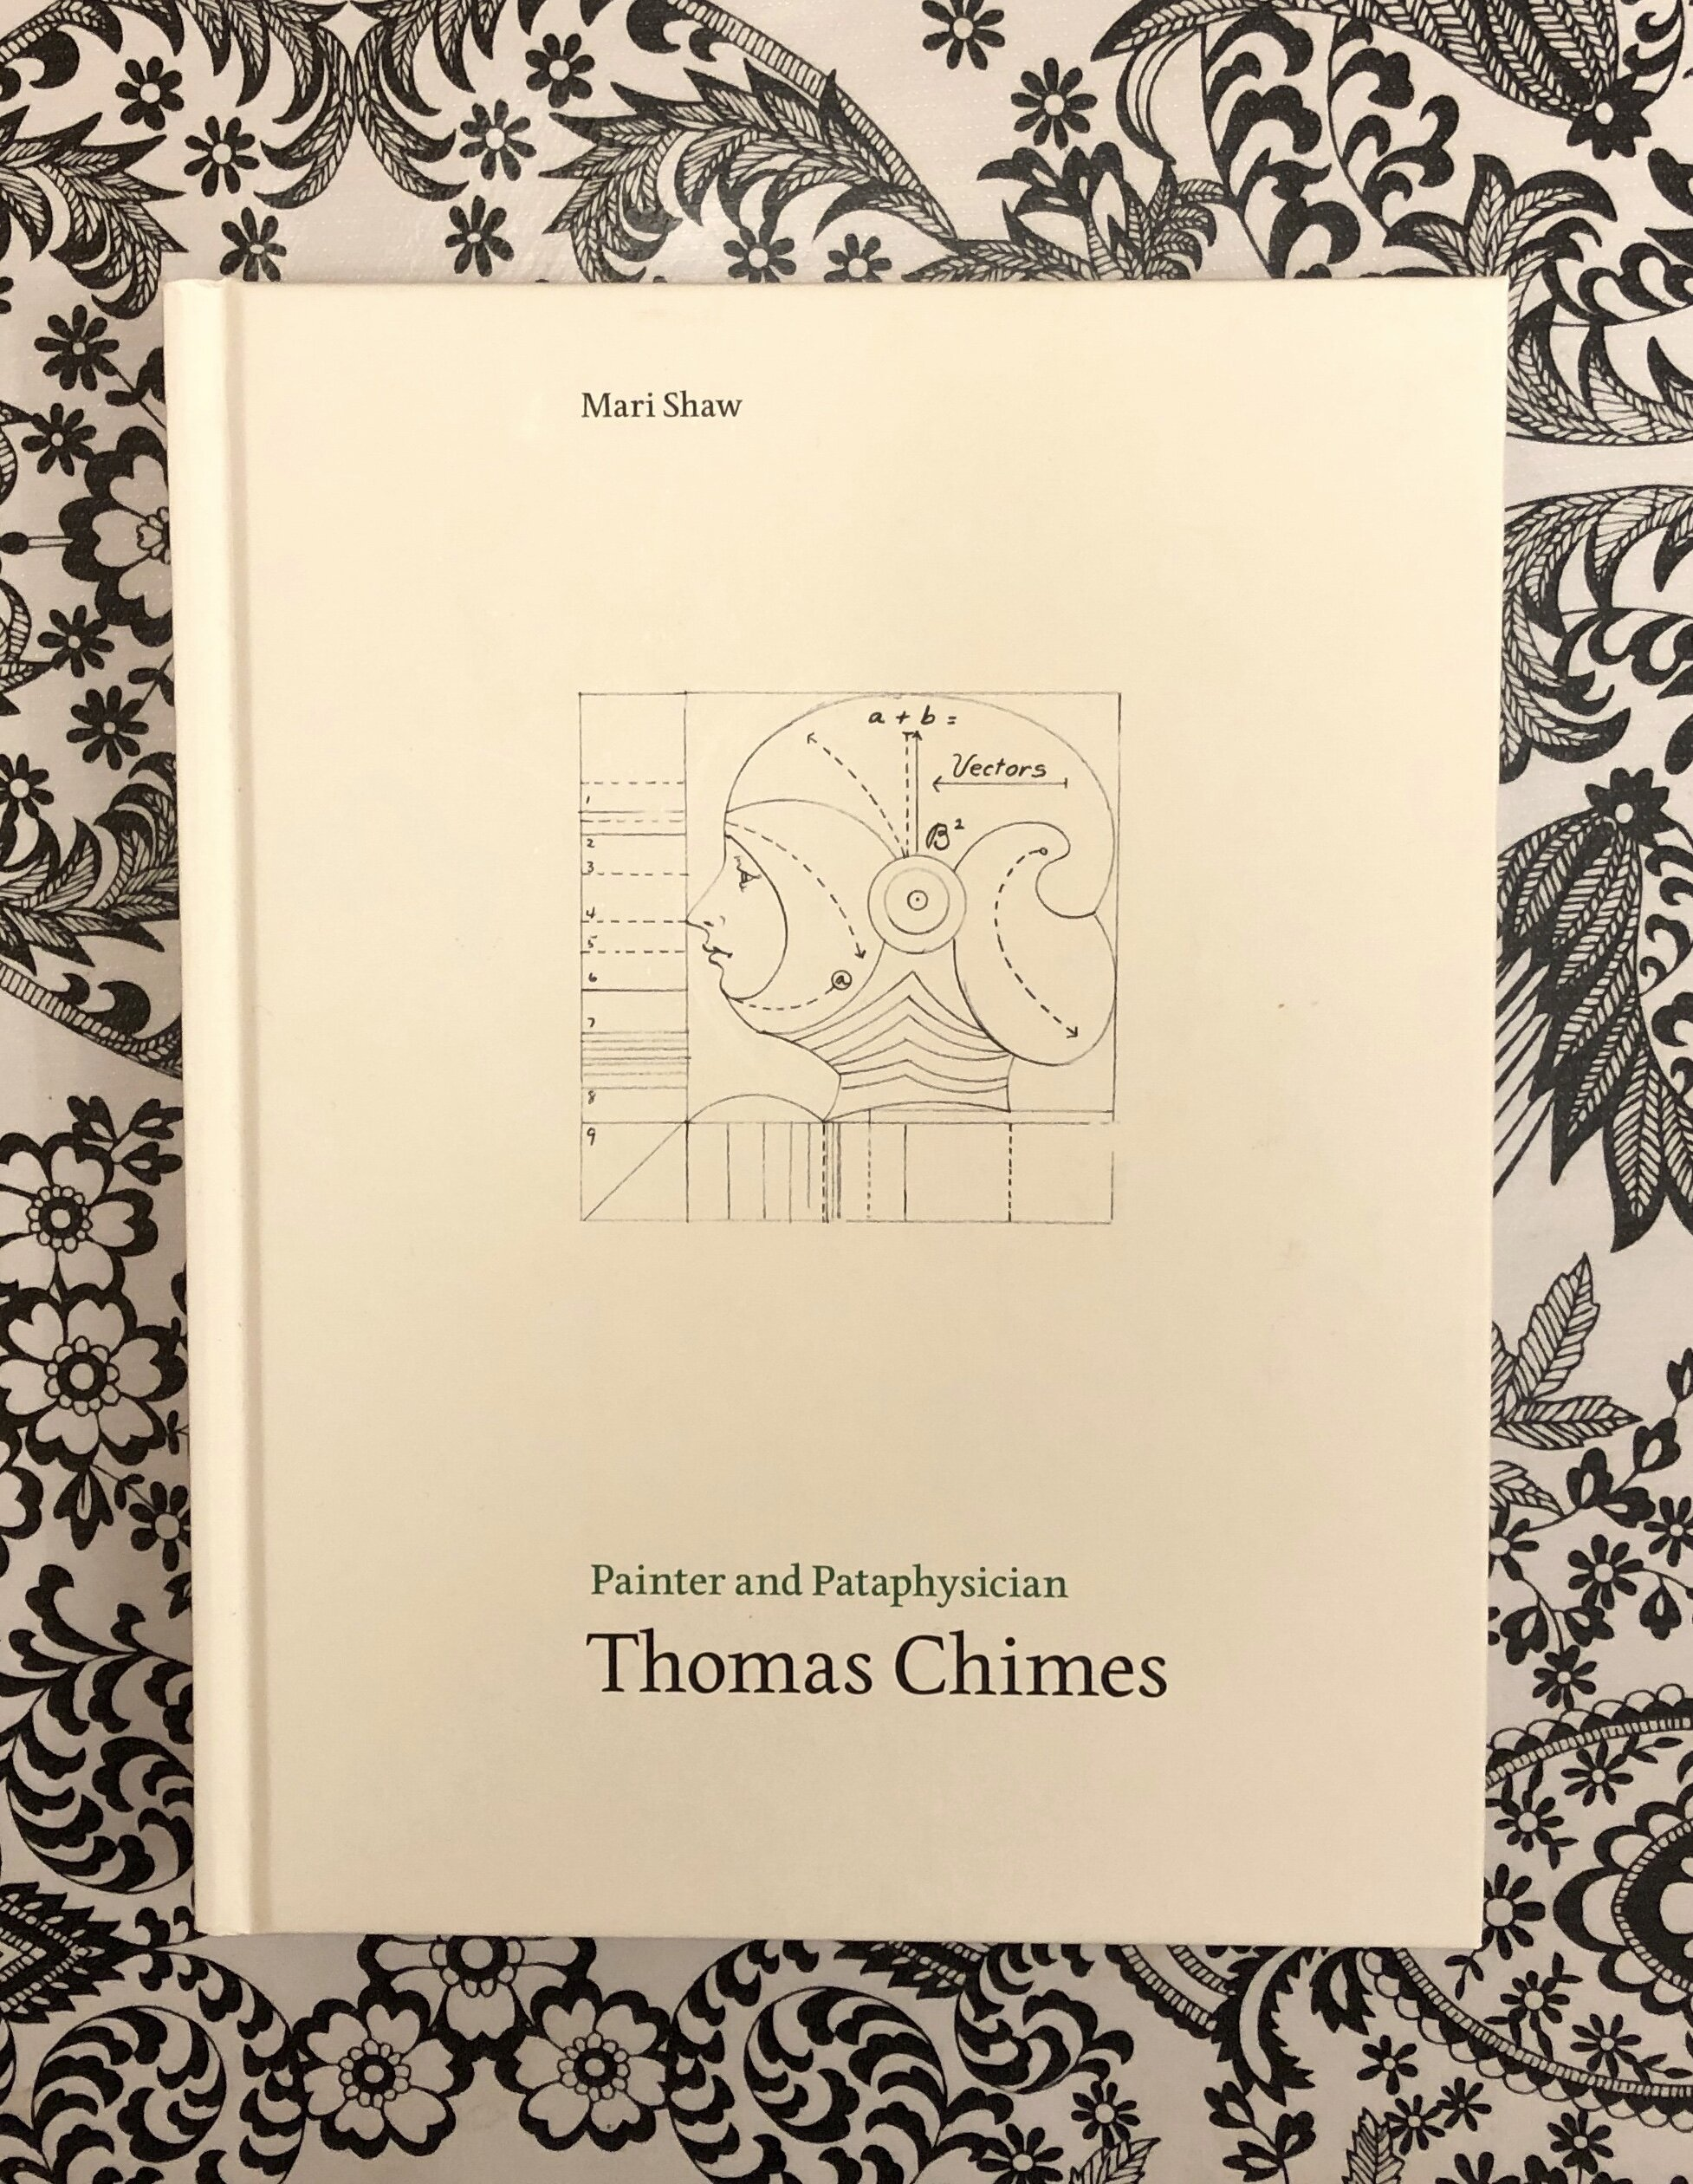 Thomas-Chimes-Painter-Pataphysician-book.JPG